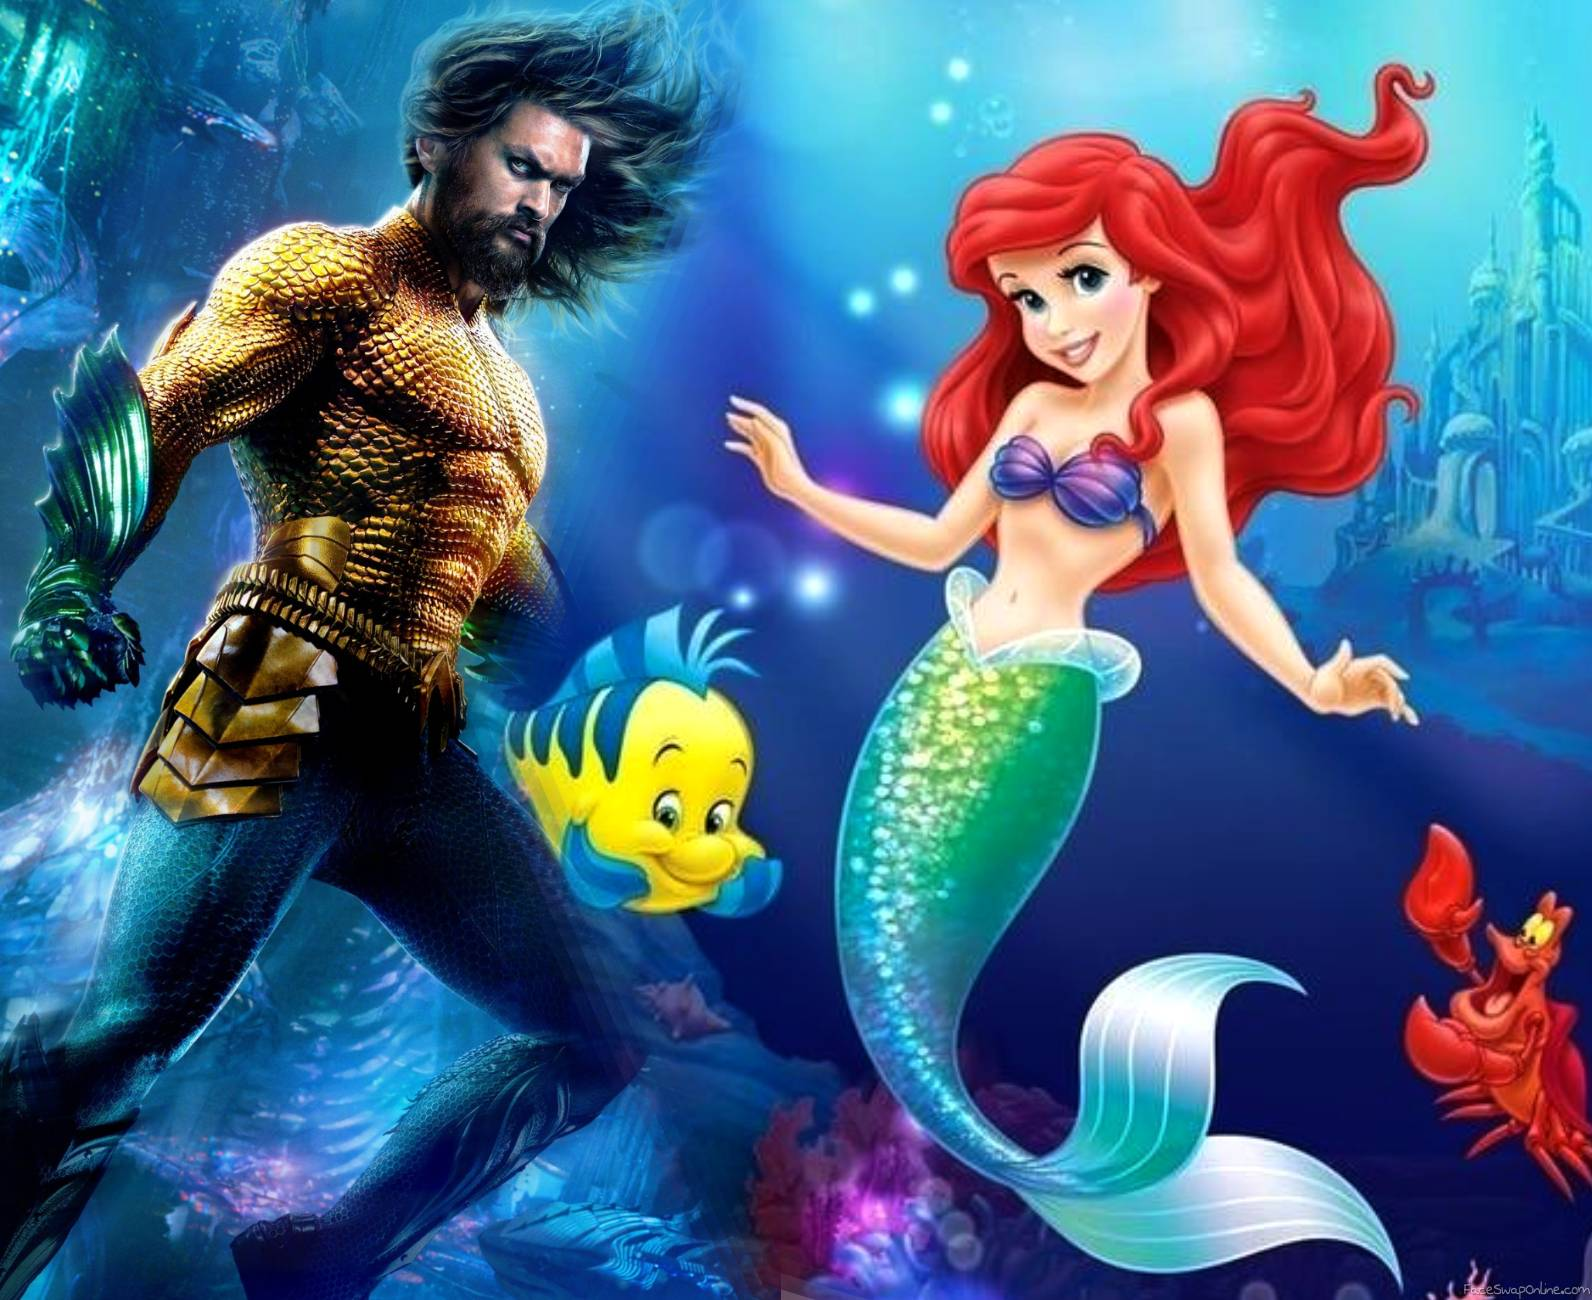 Aquaman VS Little Mermaid